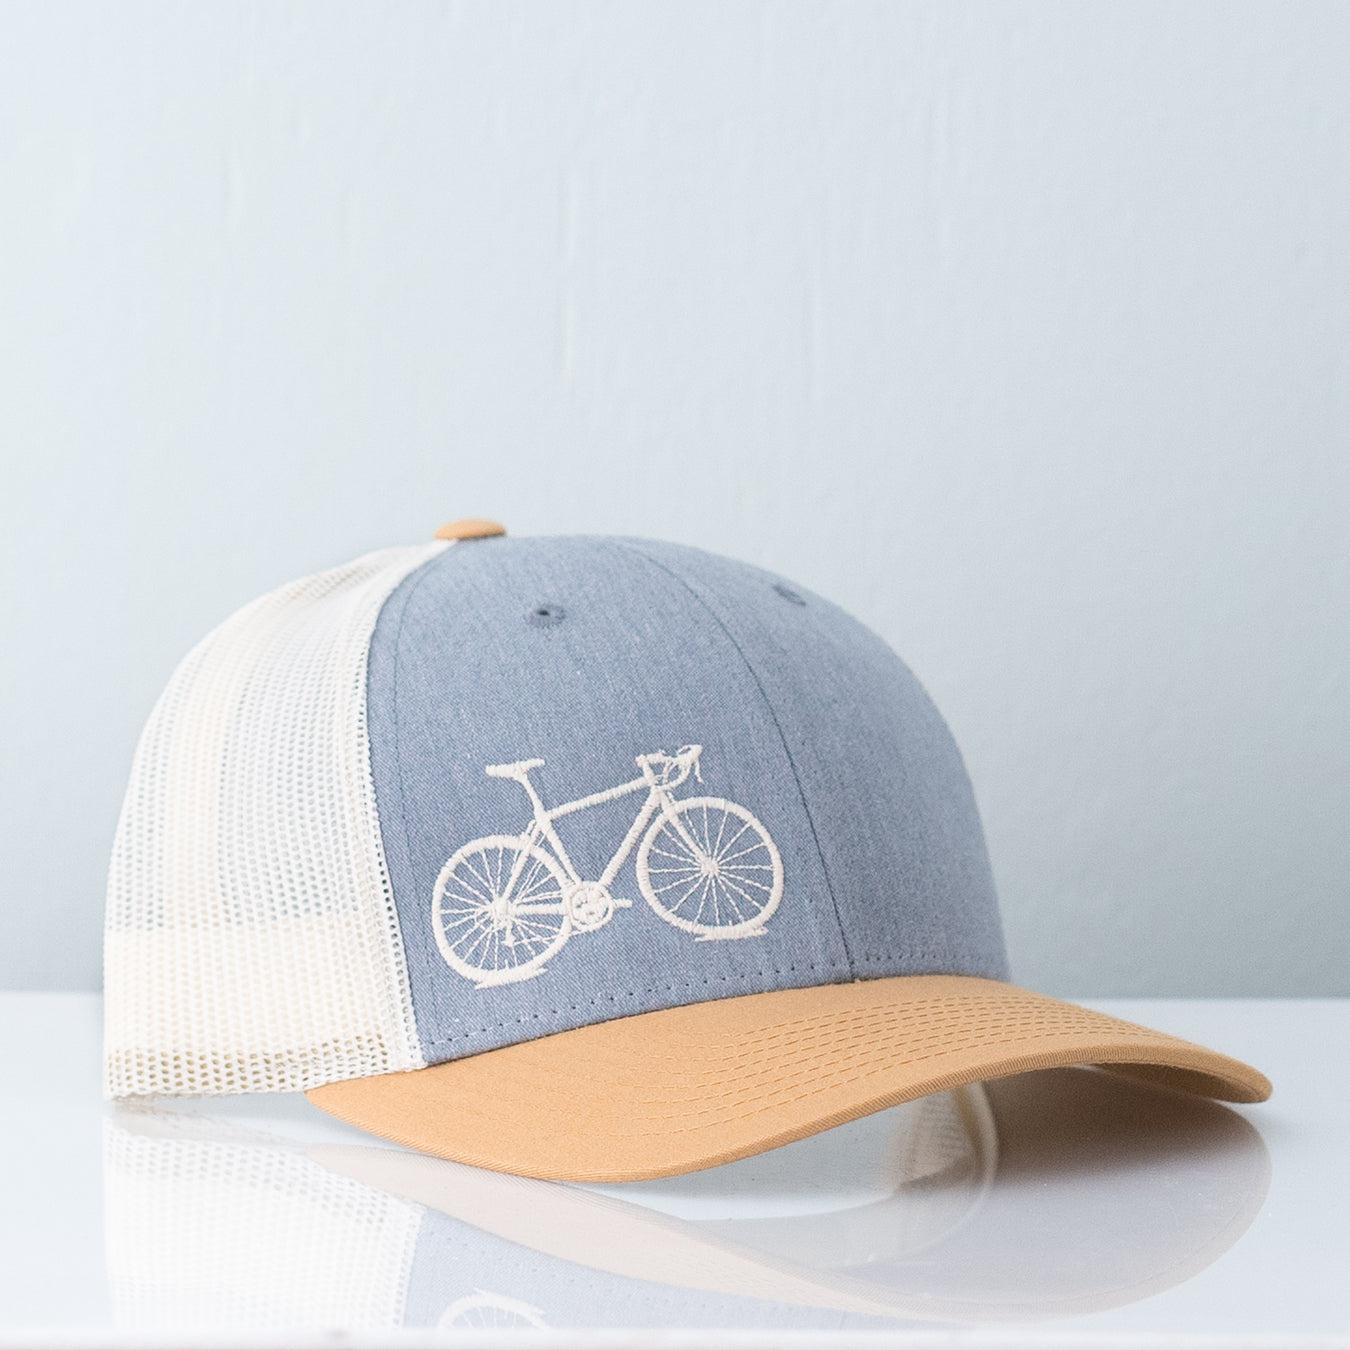 Birch mesh back trucker hat embroidered with cream vital bicycle